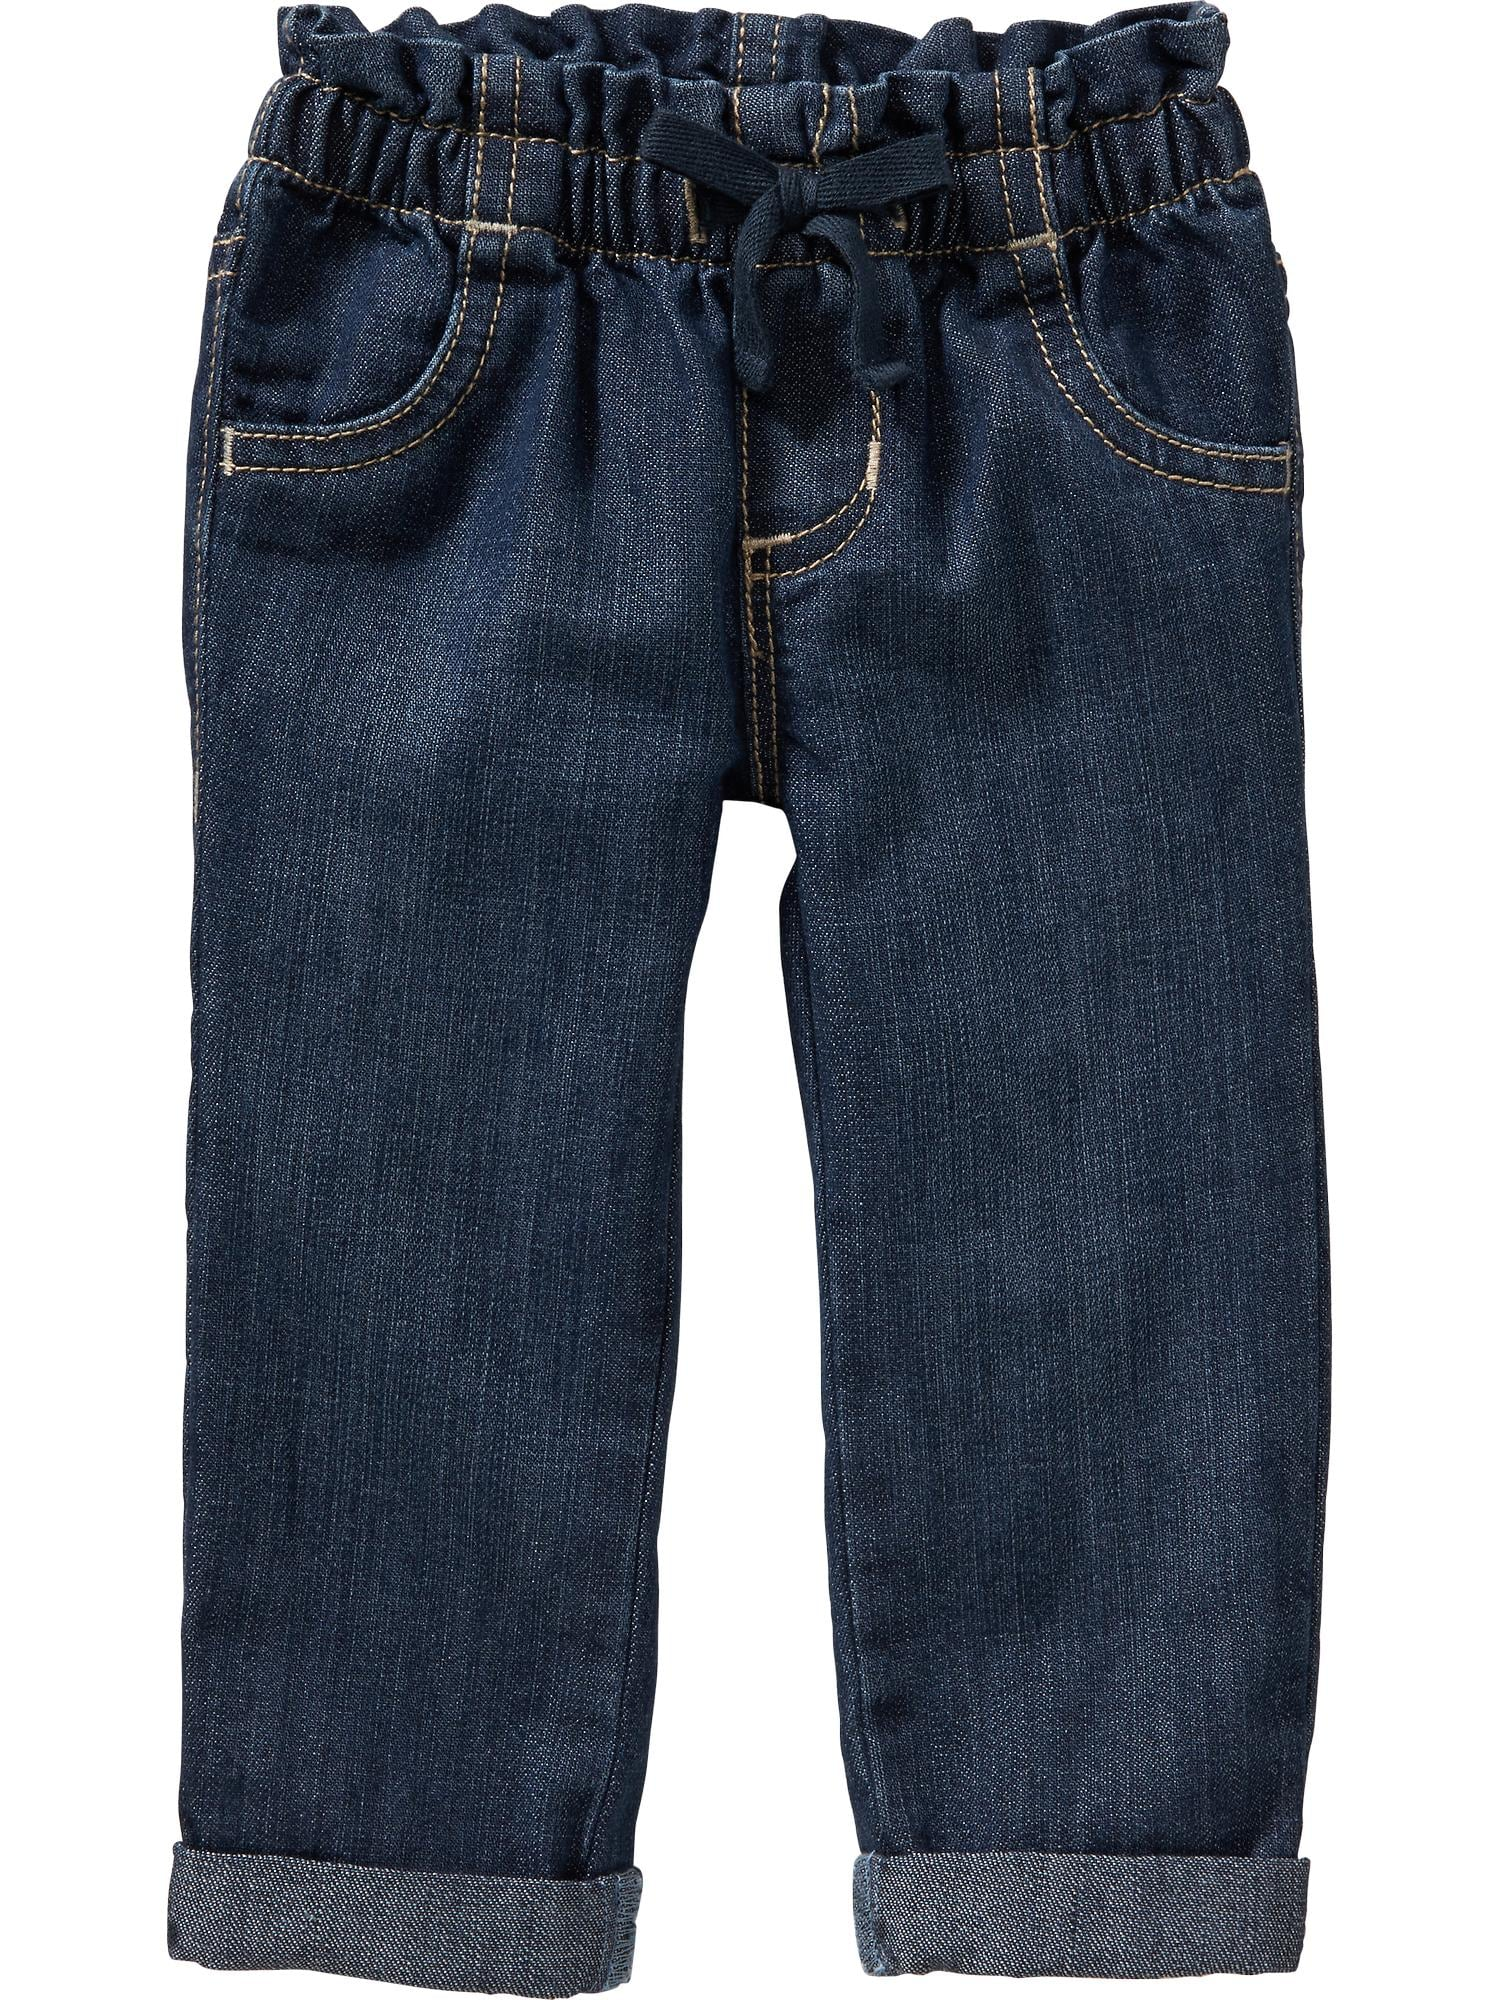 Clothing, Shoes & Accessories Girls Old Navy Bootcut Blue Jeans Size 3t Durable Service